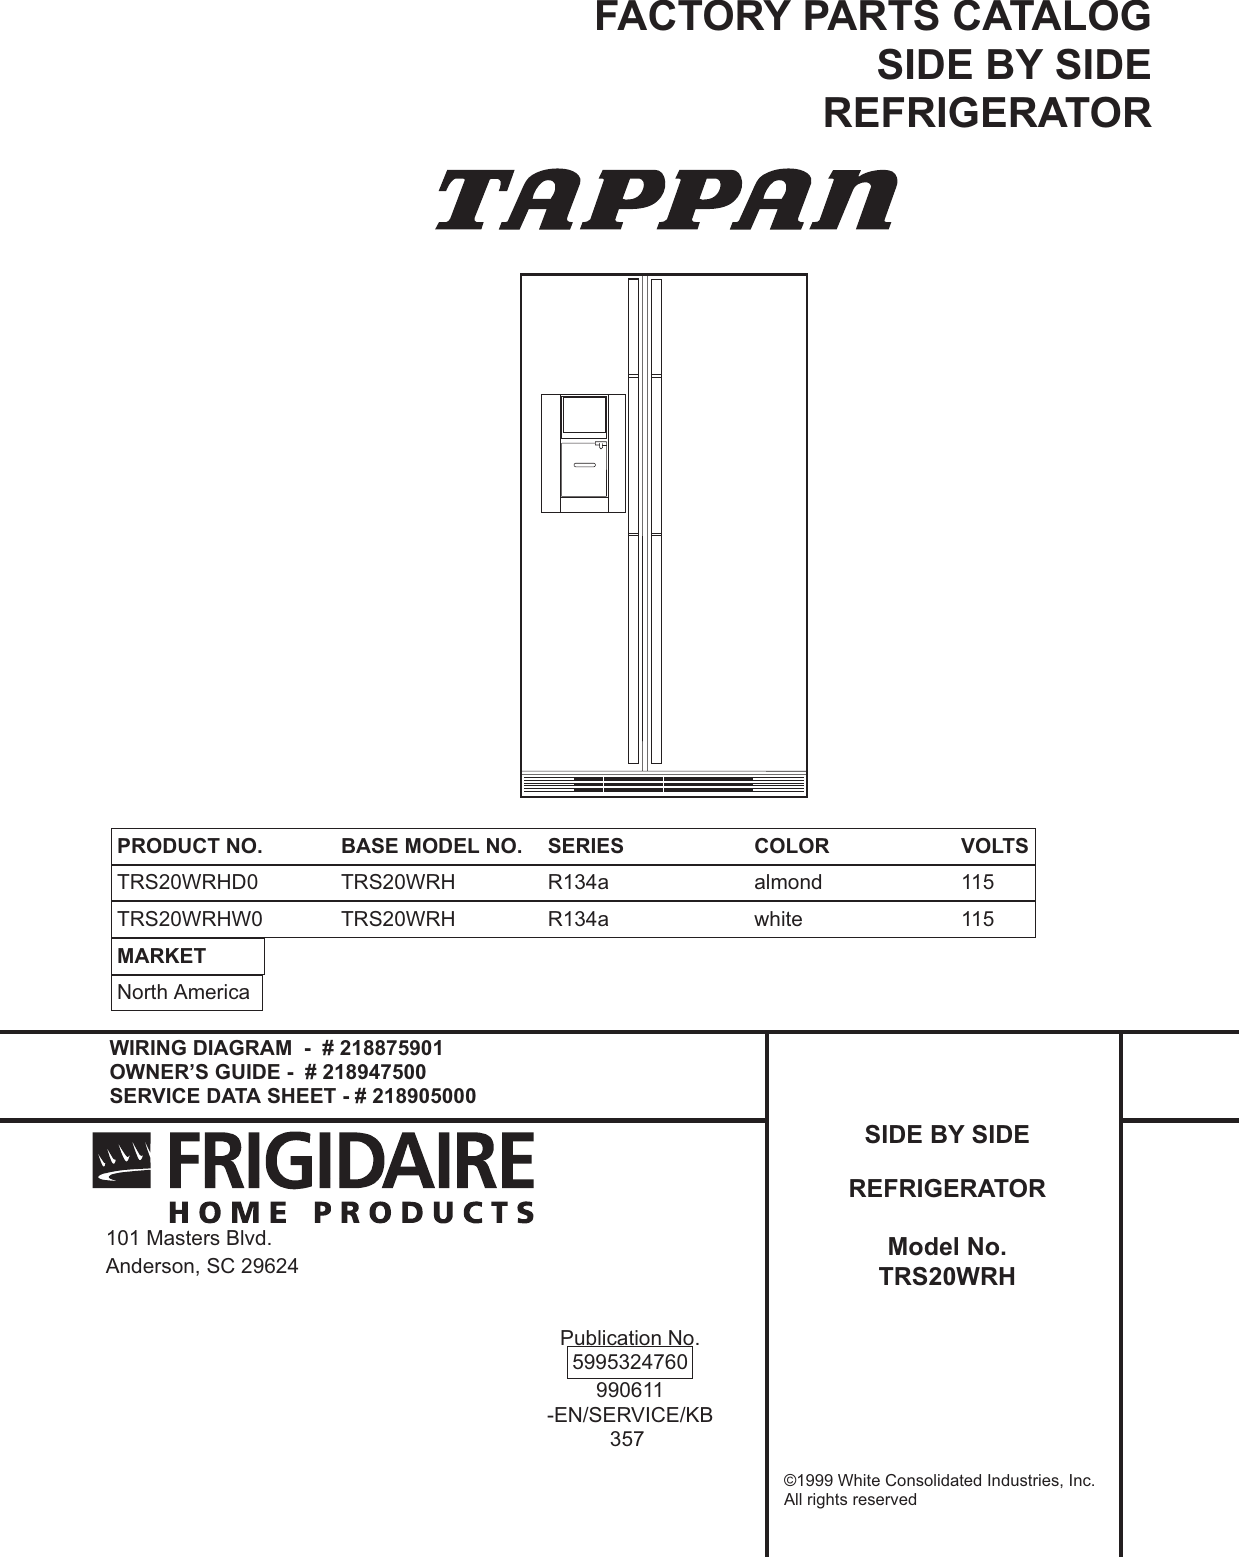 Frigidaire Trs20wrh Users Manual 95324760vp Tappan Ac Wiring Diagram